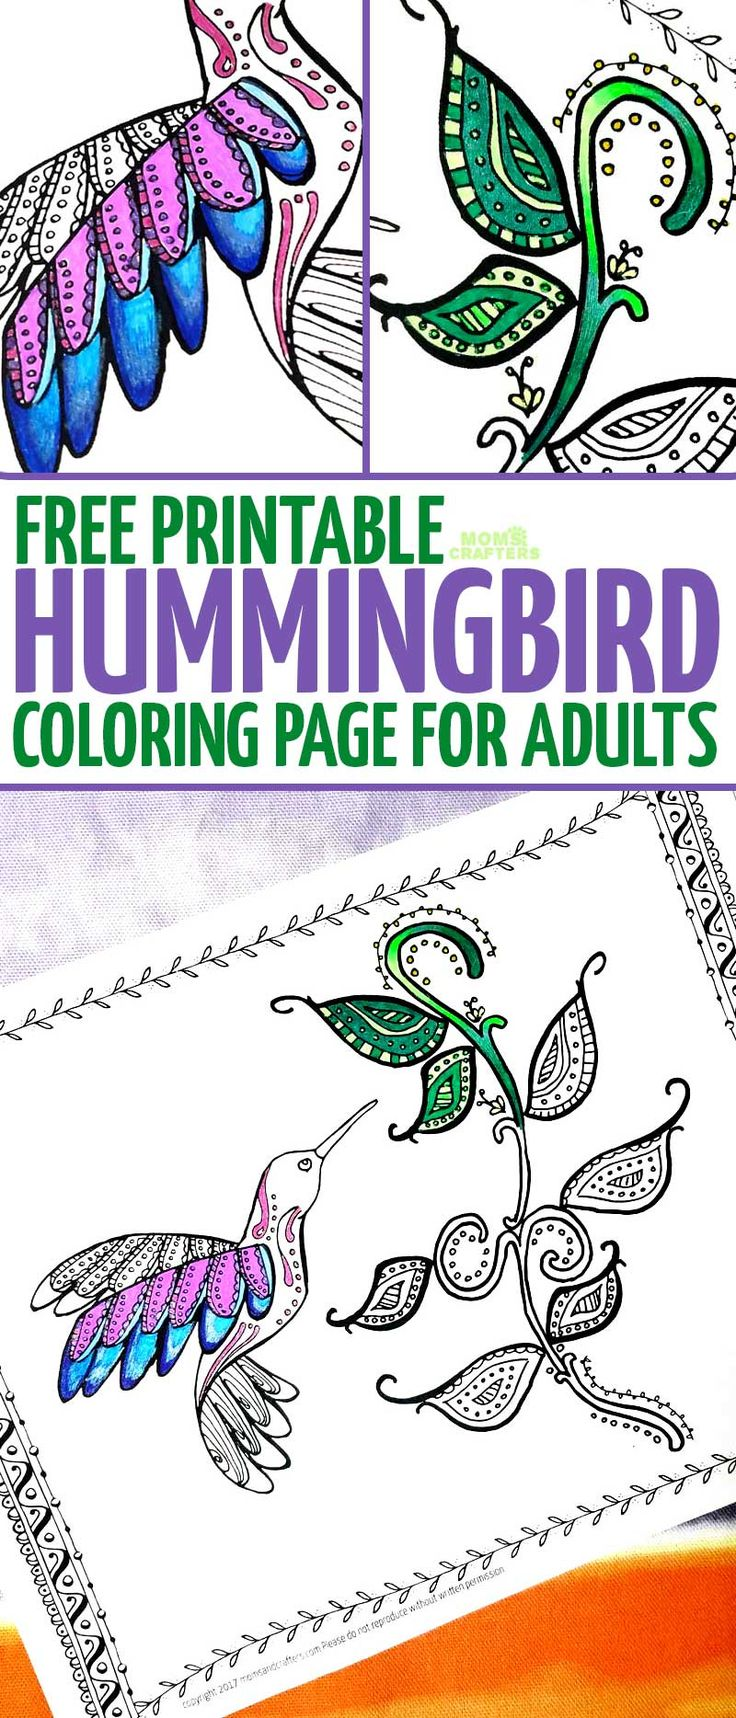 The zoology coloring book - A Free Printable Hummingbird Coloring Page